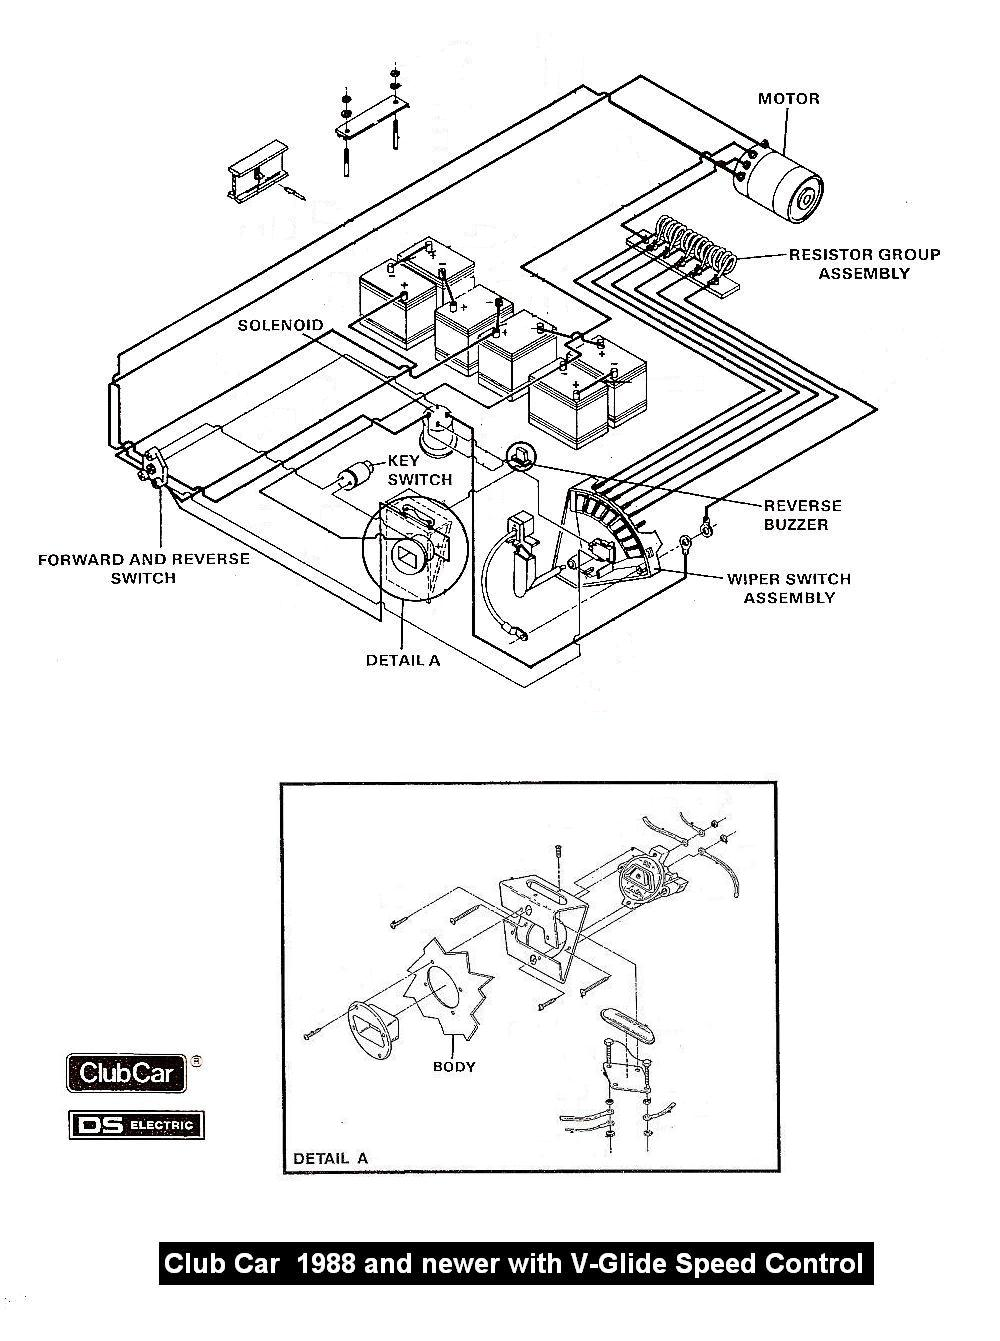 > Club Car Wiring Diagrams CC 88 Newer Wiper Wiringjpg